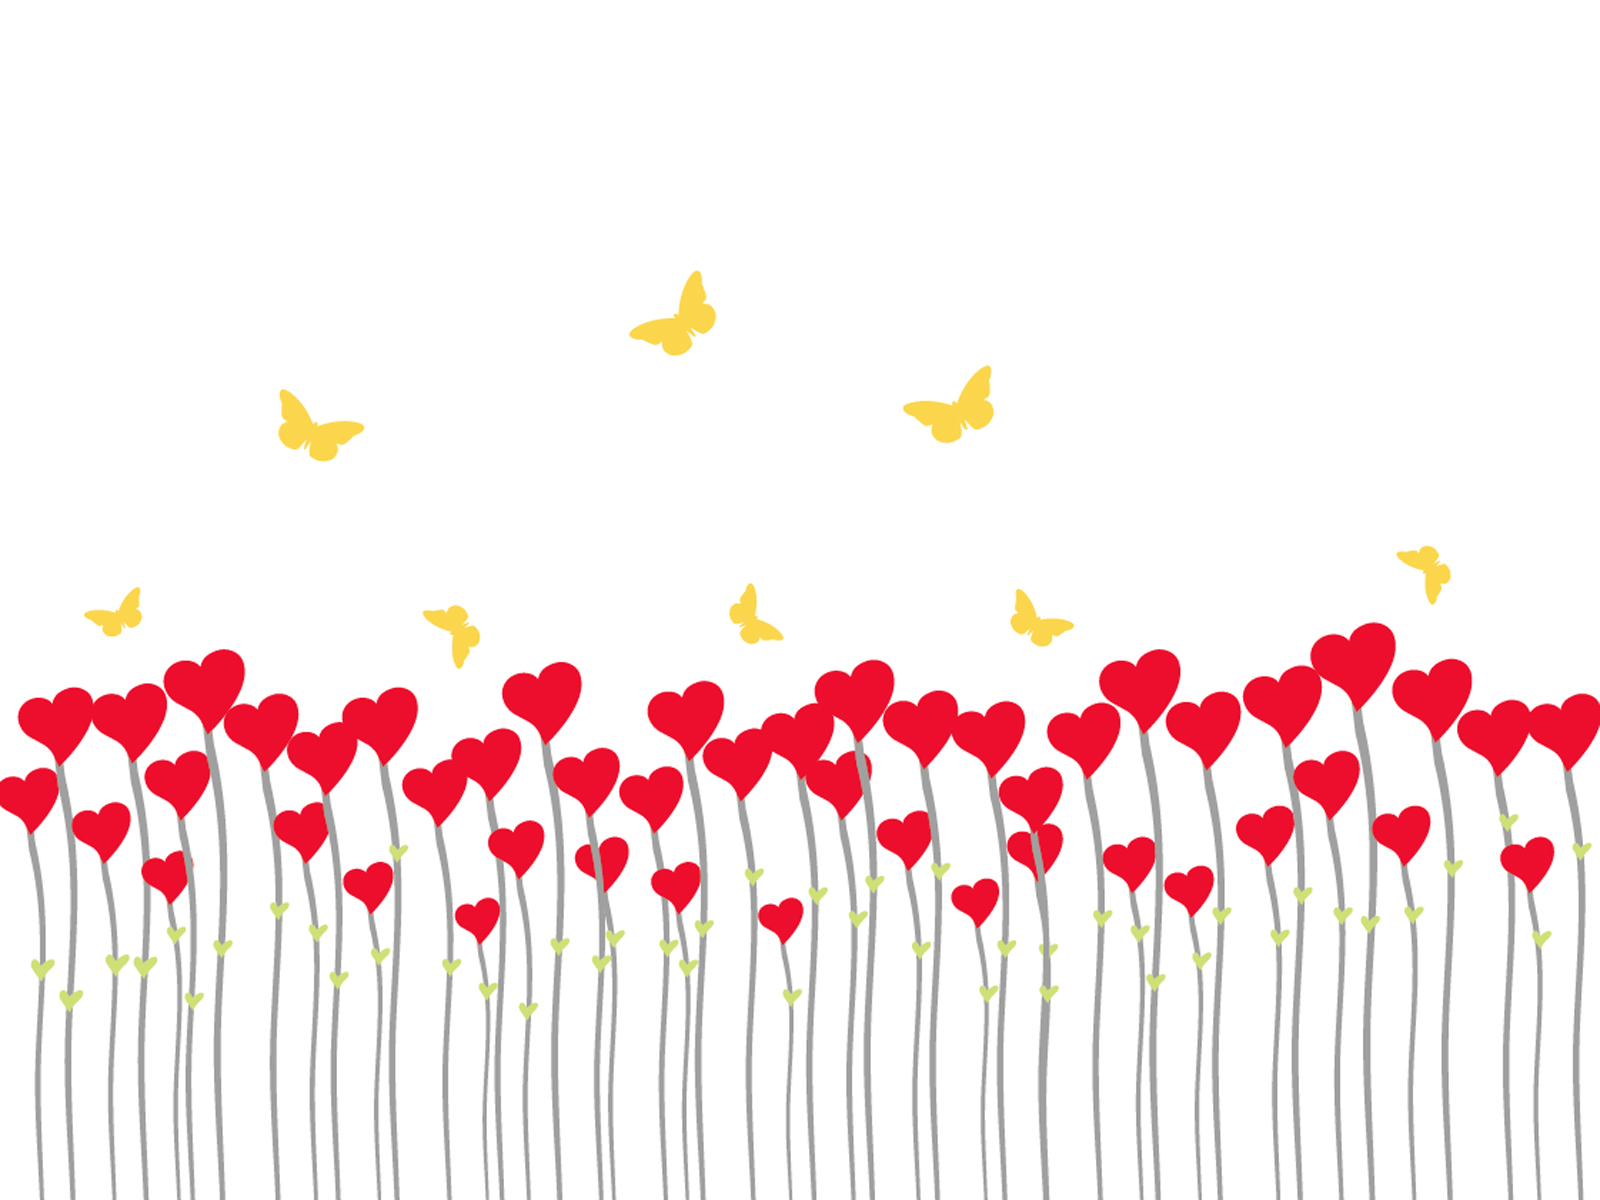 Butterflies heart shaped pattern PPT Backgrounds